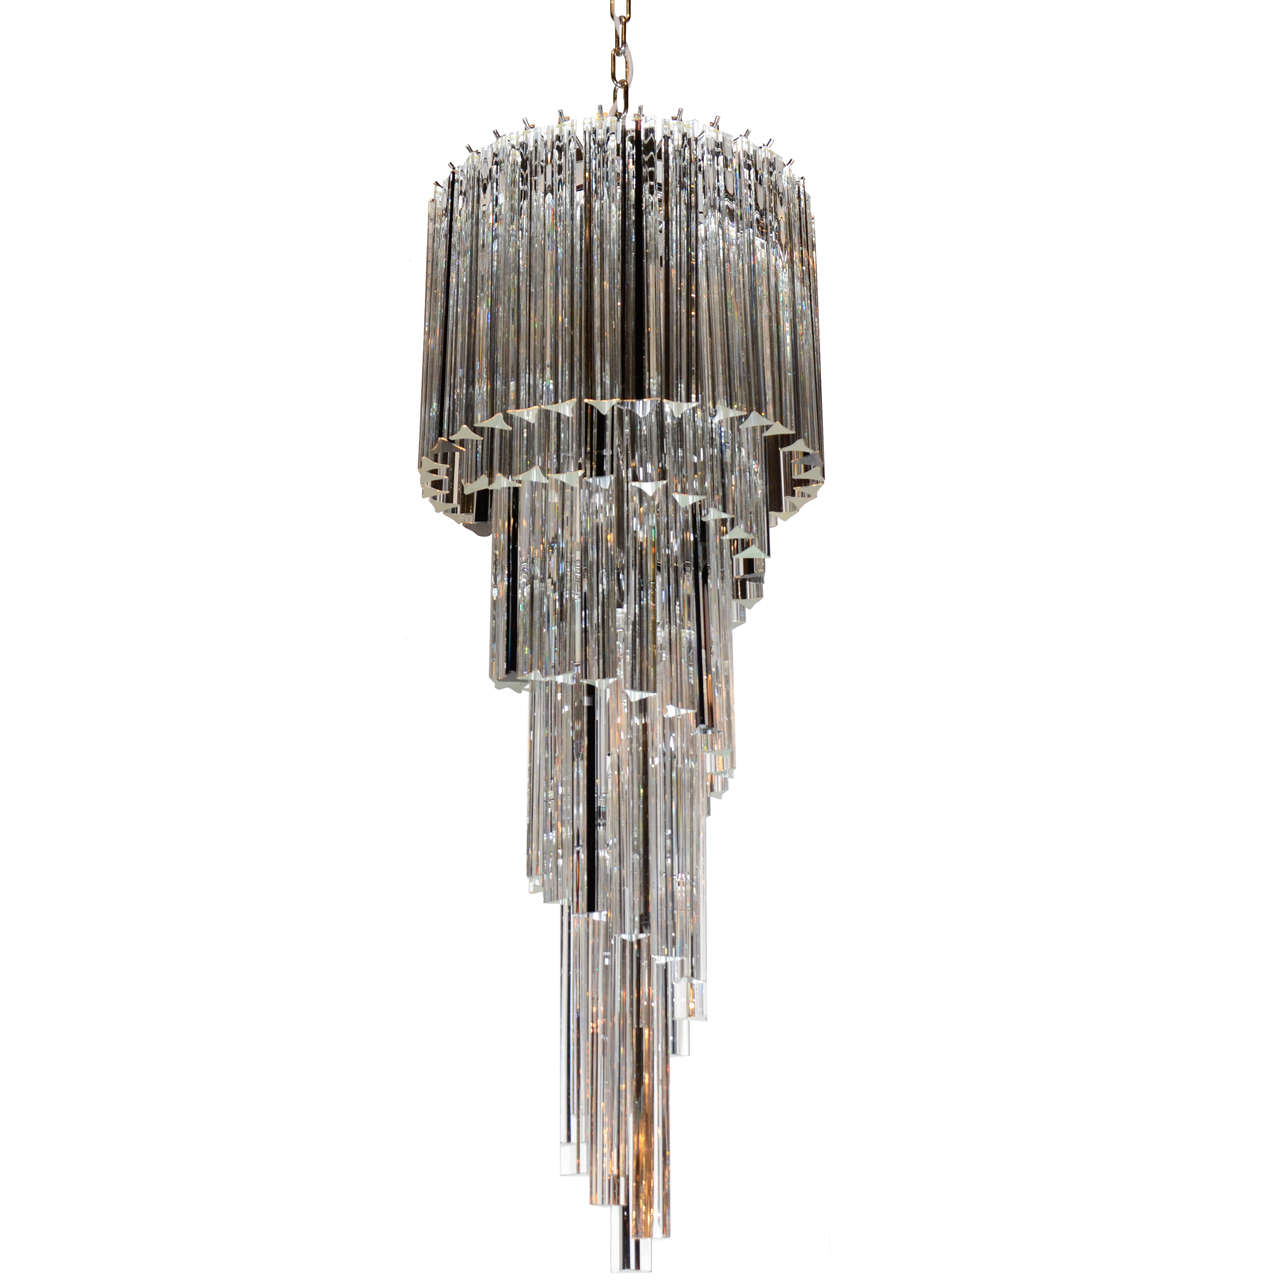 Murano Spiral Chandelier: Cascading Spiral Clear And Black Murano Glass Camer